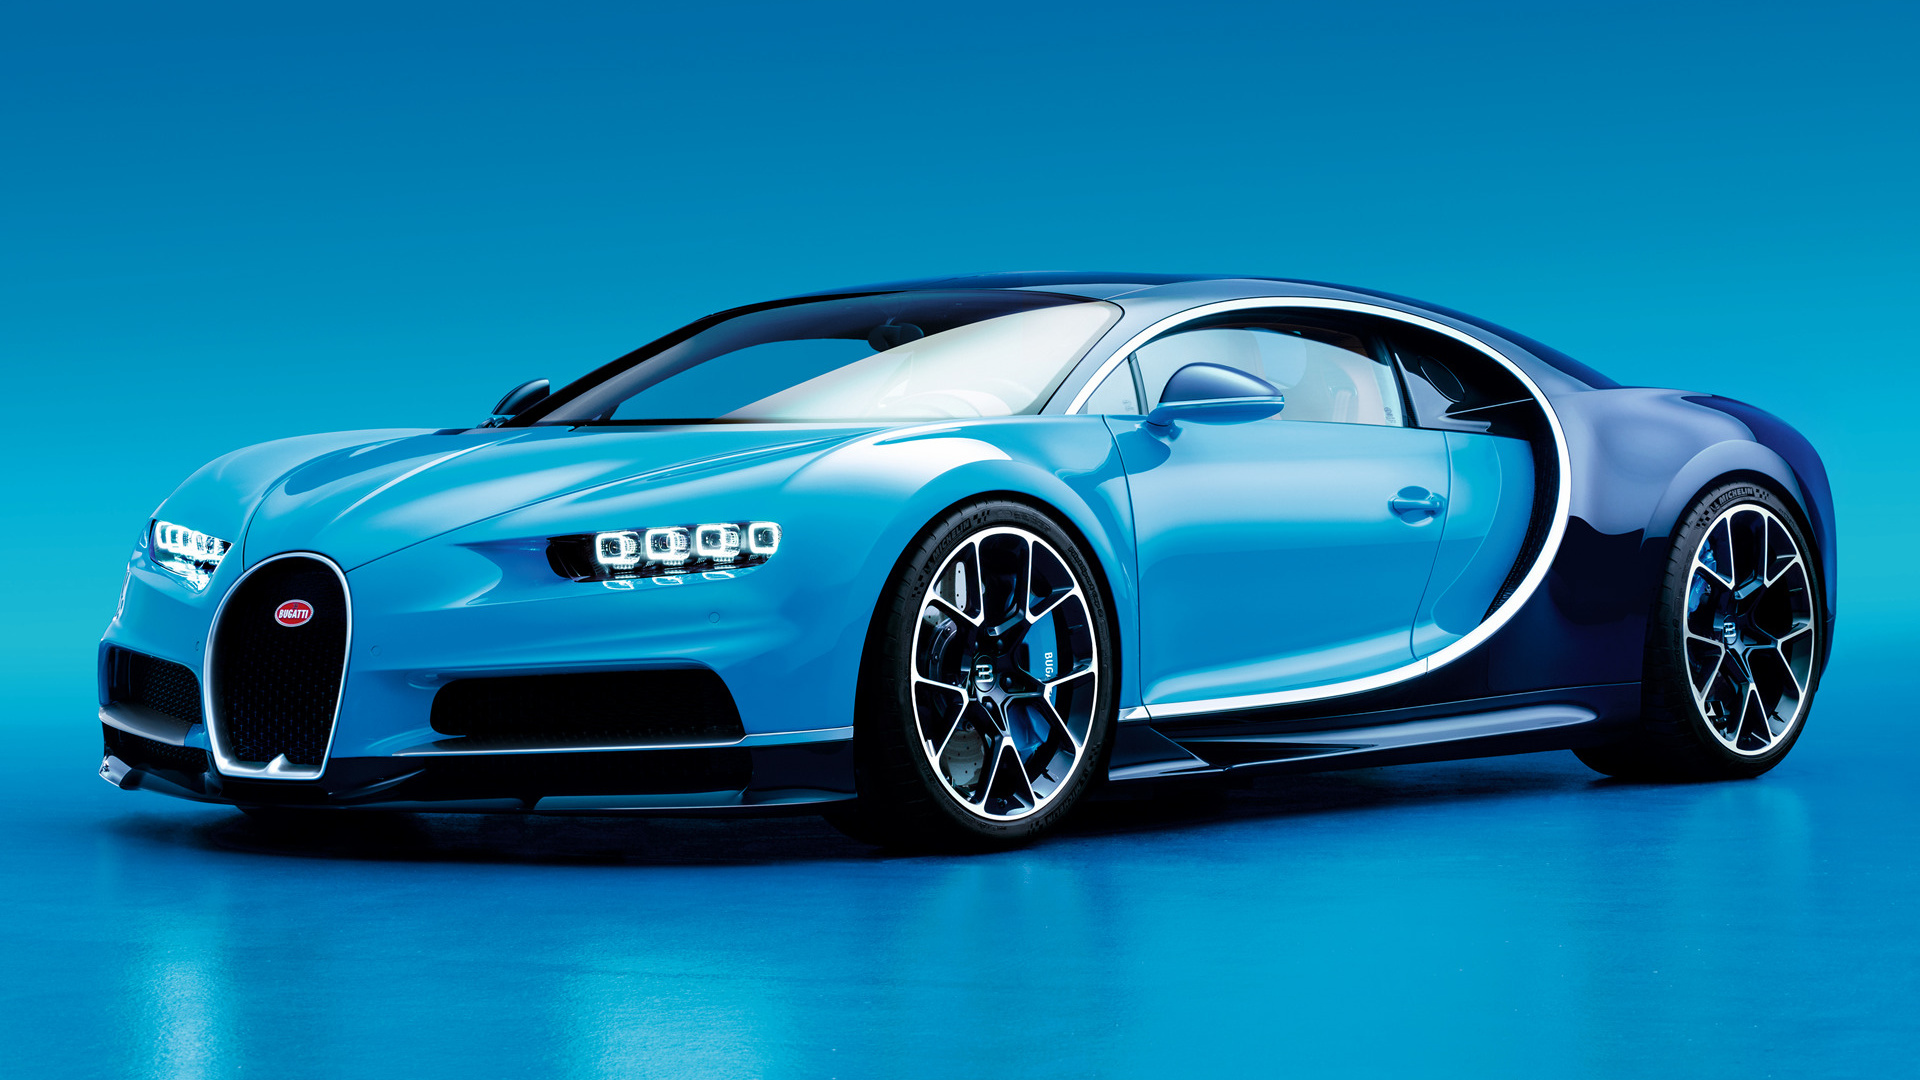 Bugatti Chiron (2016) Wallpapers and HD Images - Car Pixel